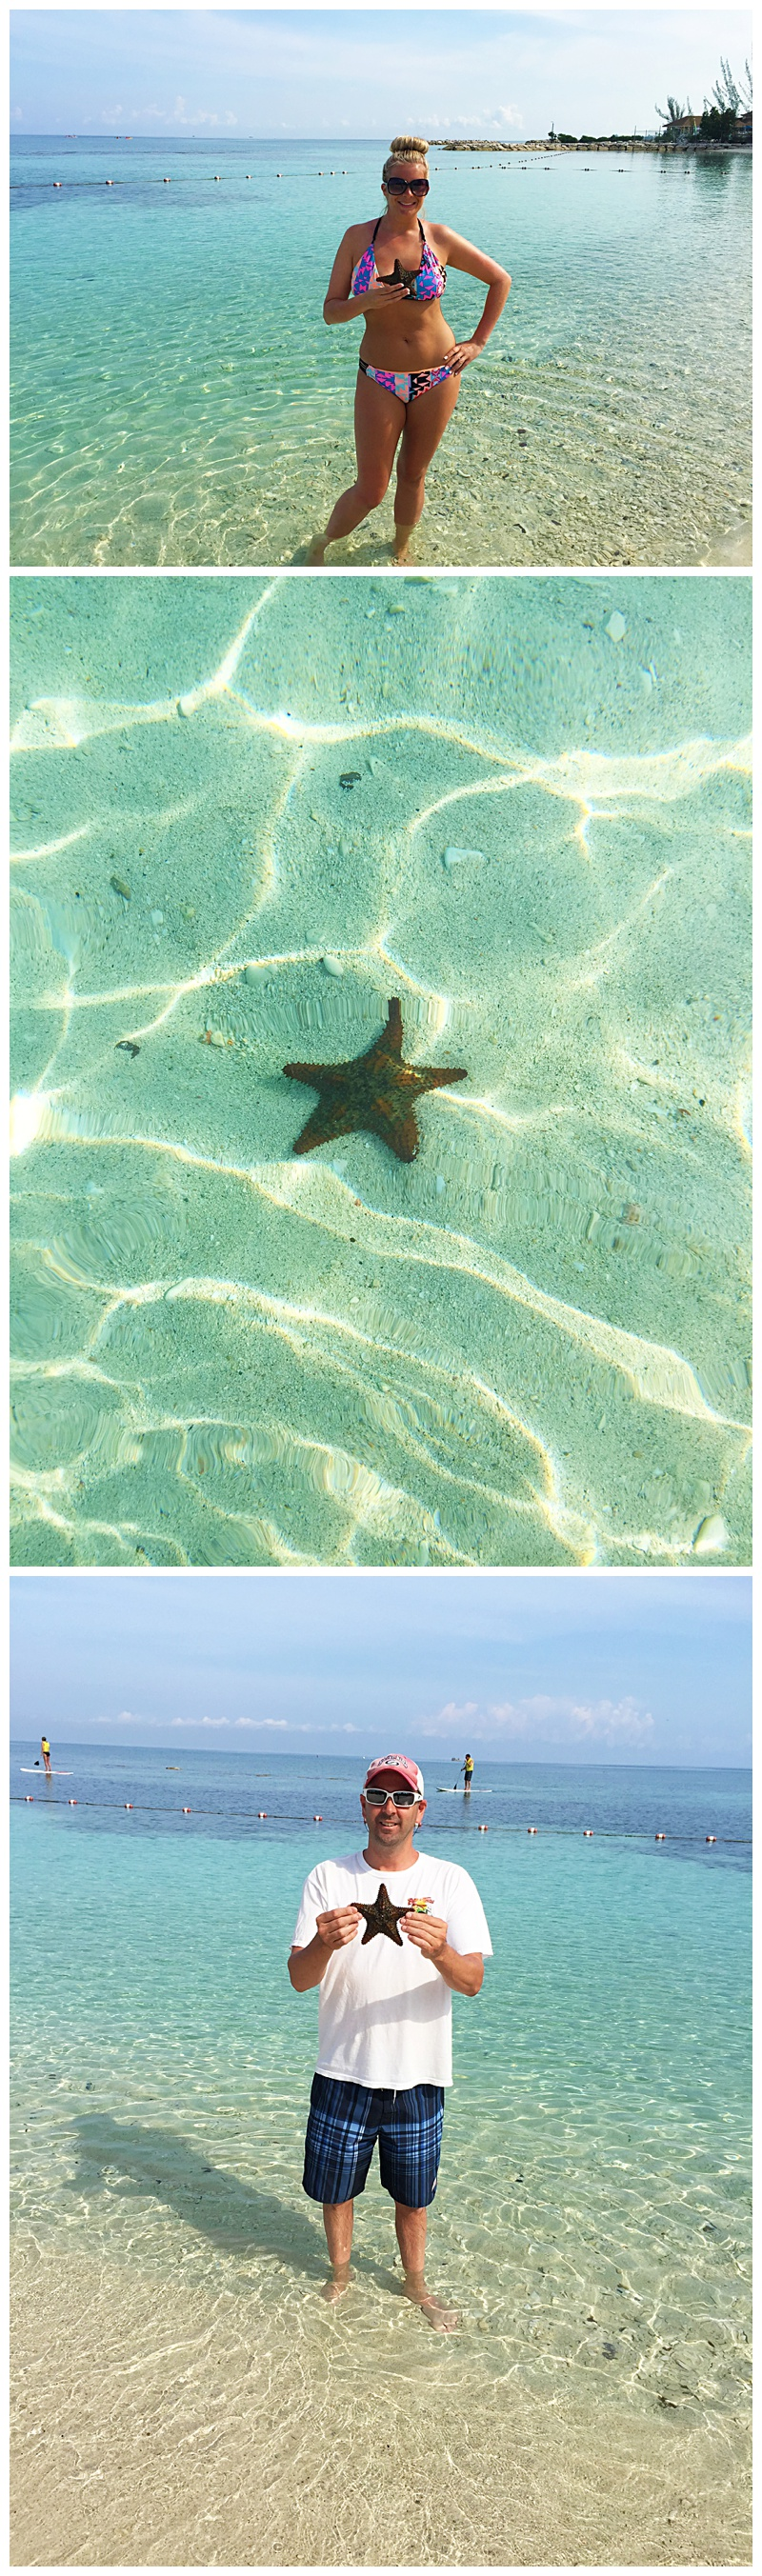 More starfish!